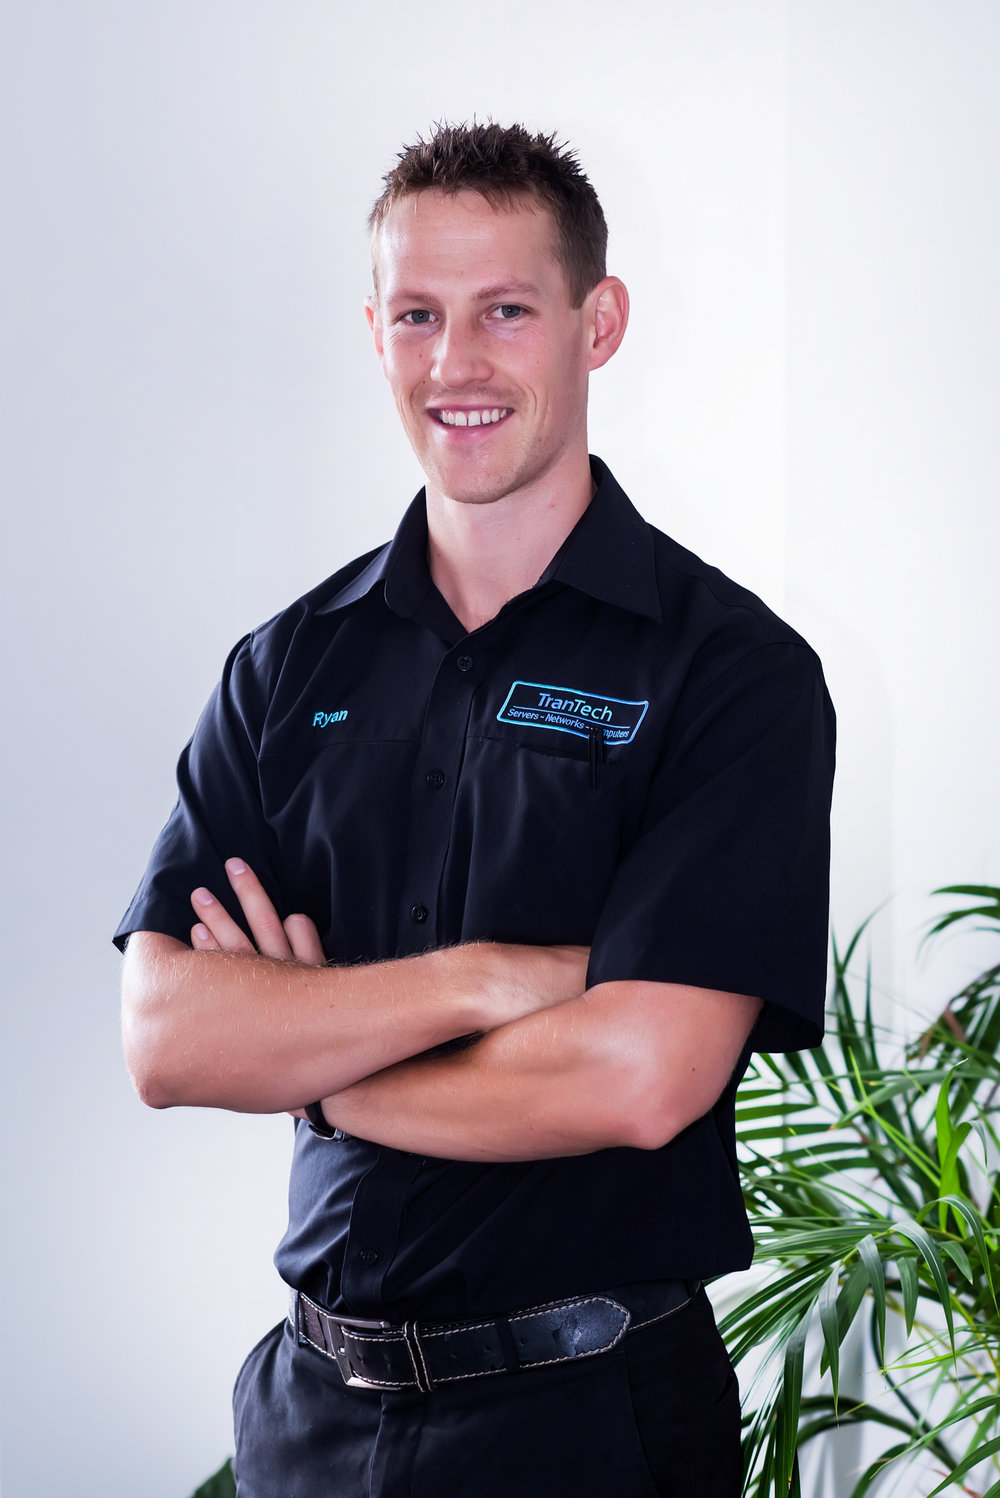 Ryan Whitehead - ONSITE TECH + ELITE FITNESS CHAMPSTARTED IN I.T. 2008What are you best at?I think, within my job, I'm best at rapid change from day to day and being able to adapt – along with very good problem-solving skills.